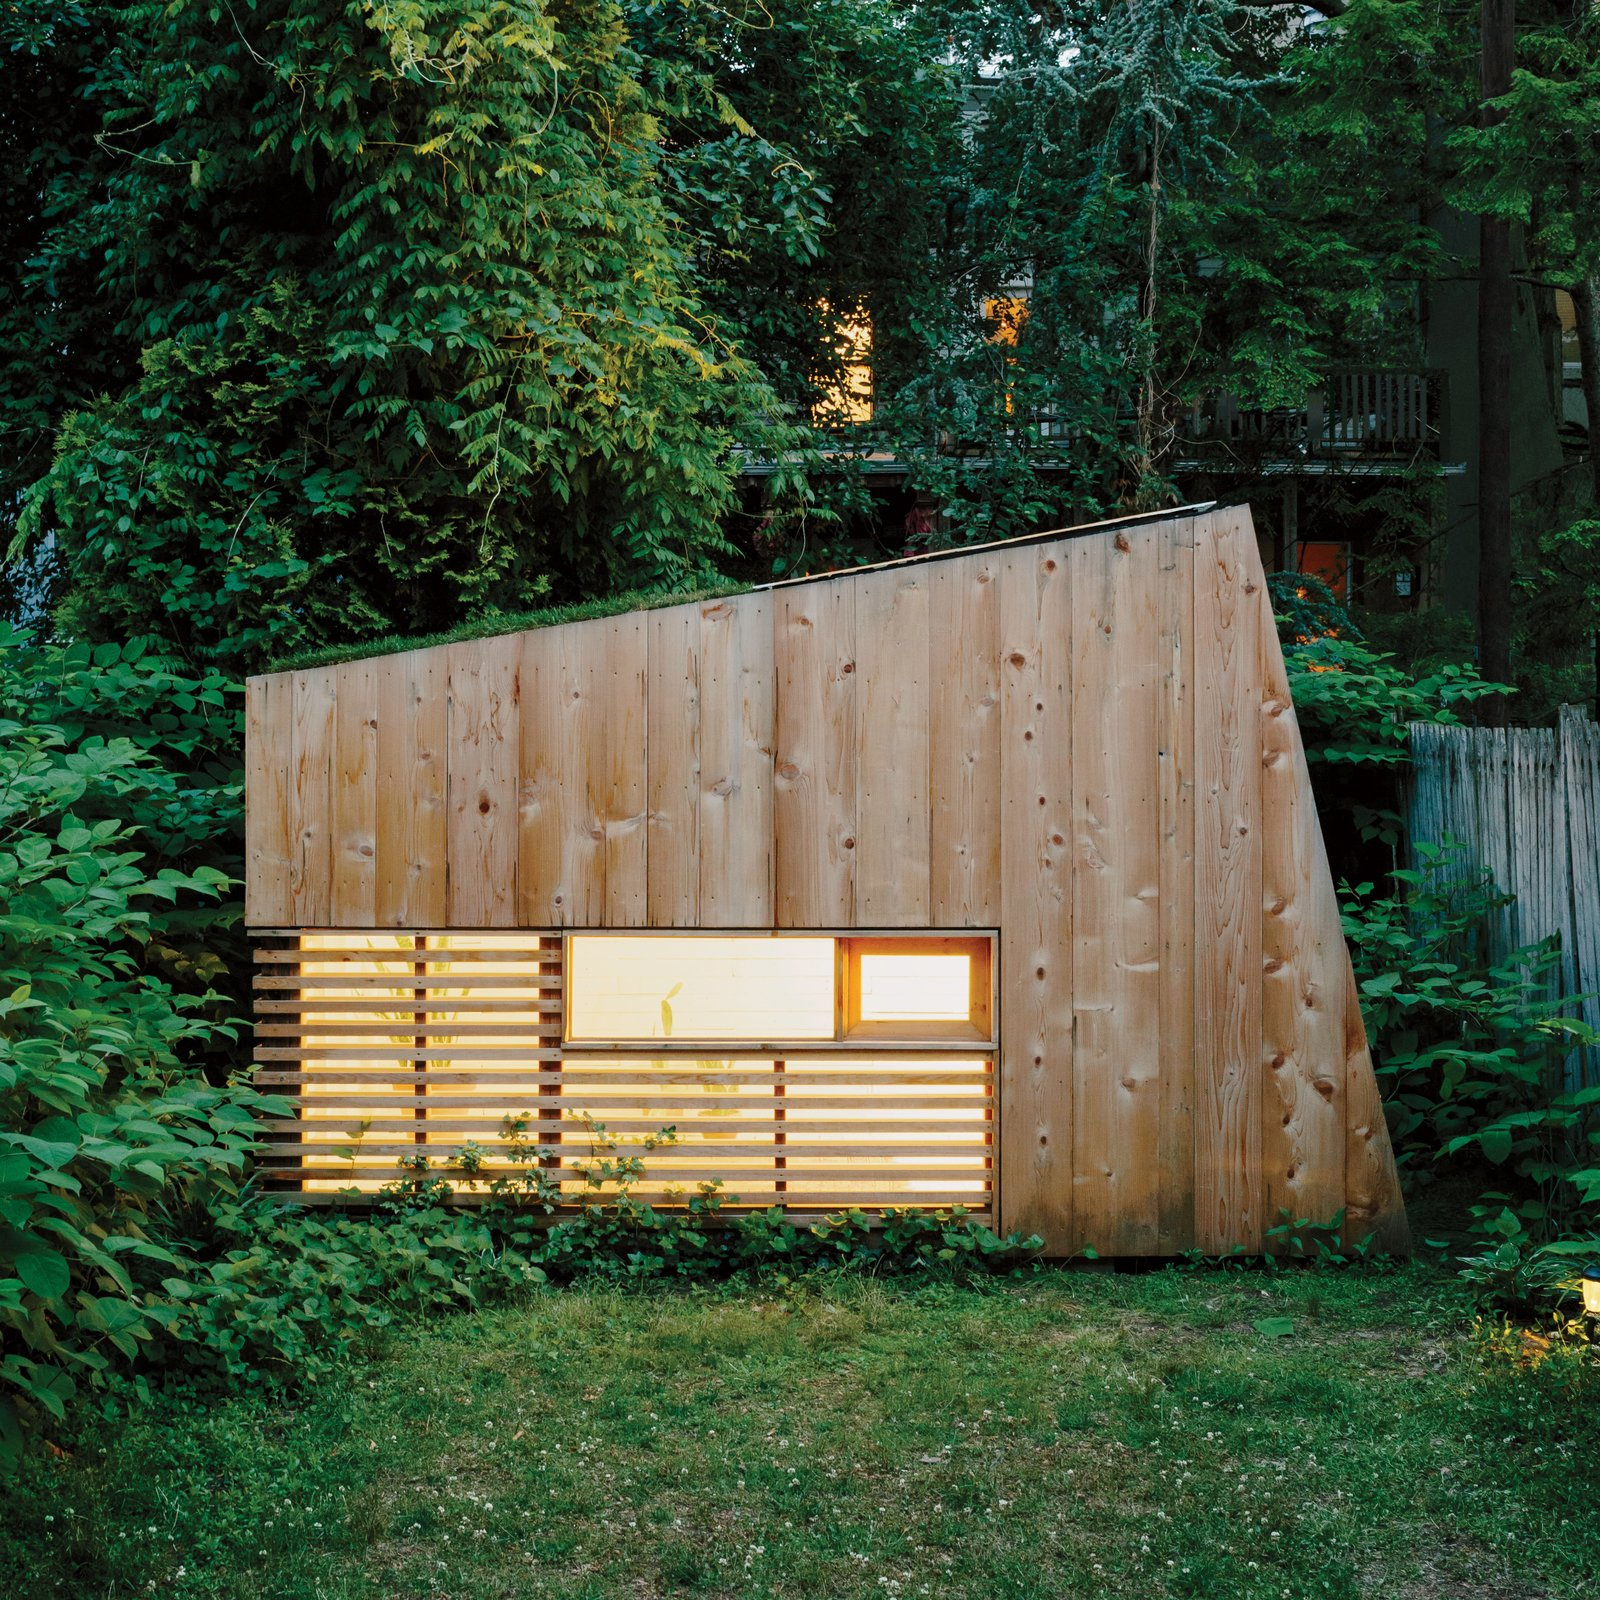 "Just a few blocks from the swooping Barclays Center arena in downtown Brooklyn sits an unexpectedly quiet haven, a petite 1,300-square-foot patch of green punctuated by a small outbuilding. This modest structure, a single room with just enough space for an army cot or chair, was designed and built by architect Nicholas Hunt, who runs the studio Hunt Architecture with his brother, Andrew, in addition to working for larger firms.  All the ""Right"" Angles by Matthew Keeshin from Studios for Working and Playing"